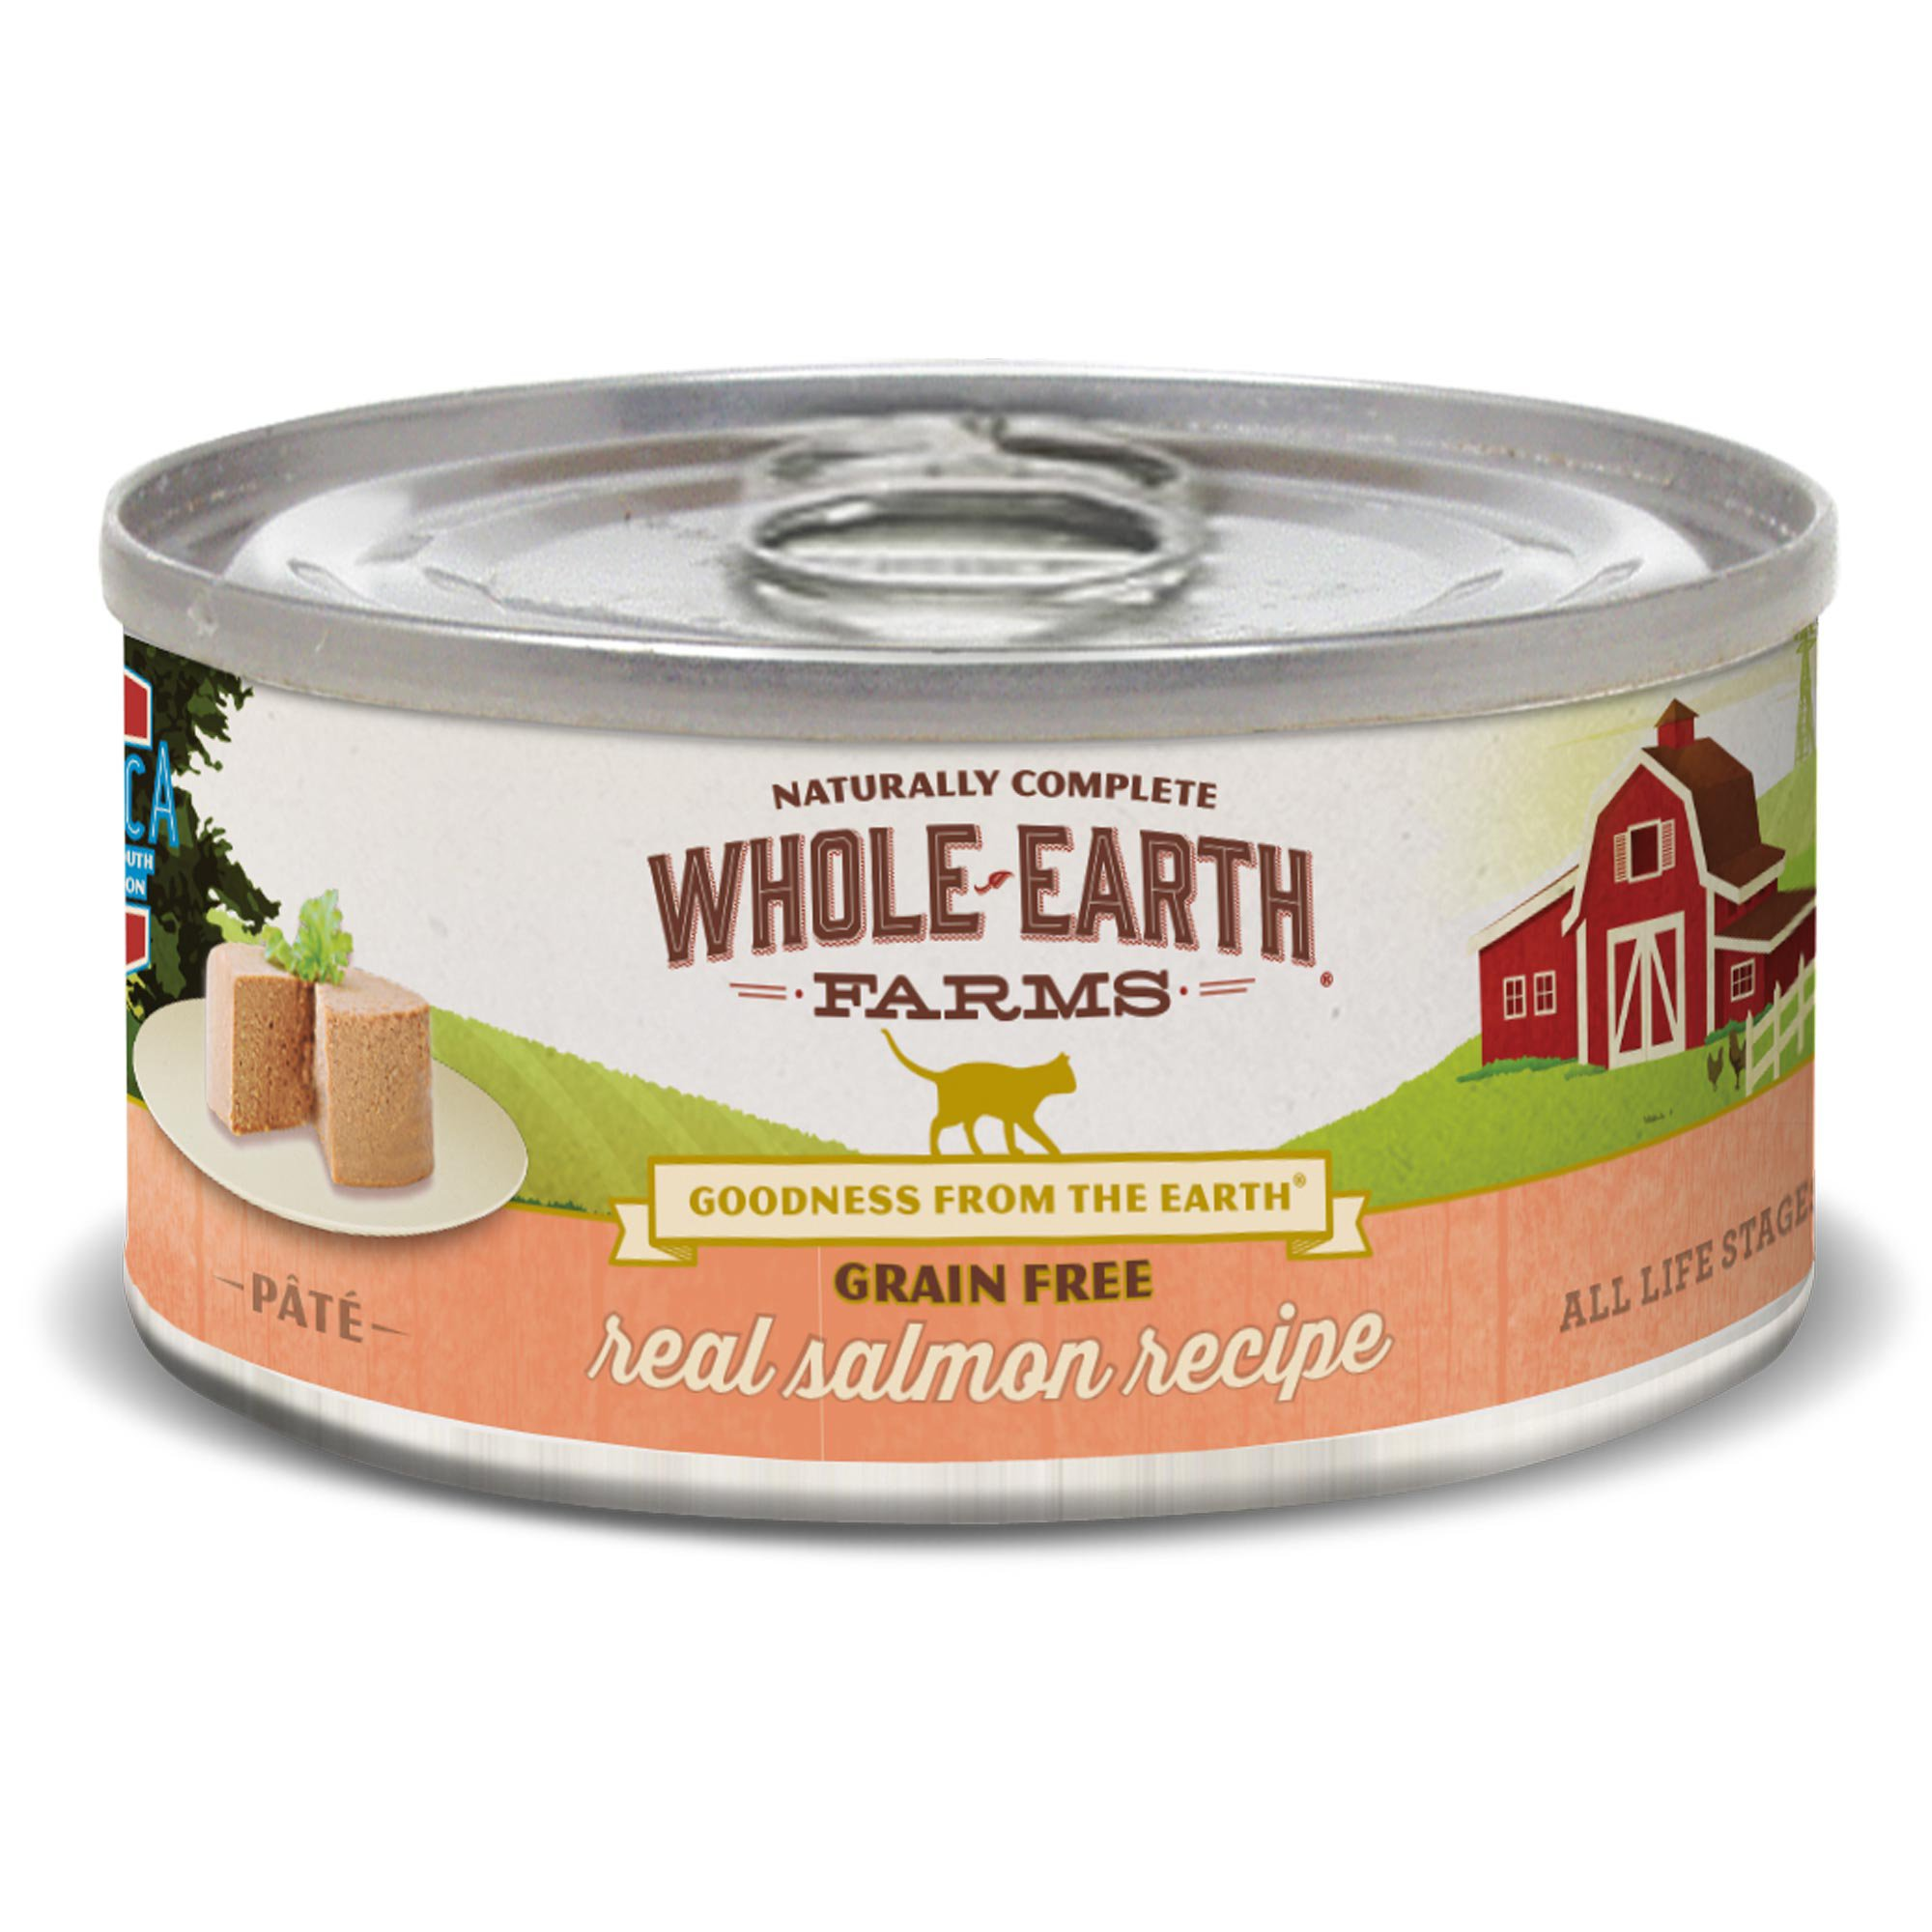 Whole Earth Farms Grain Free Real Salmon Canned Cat Food